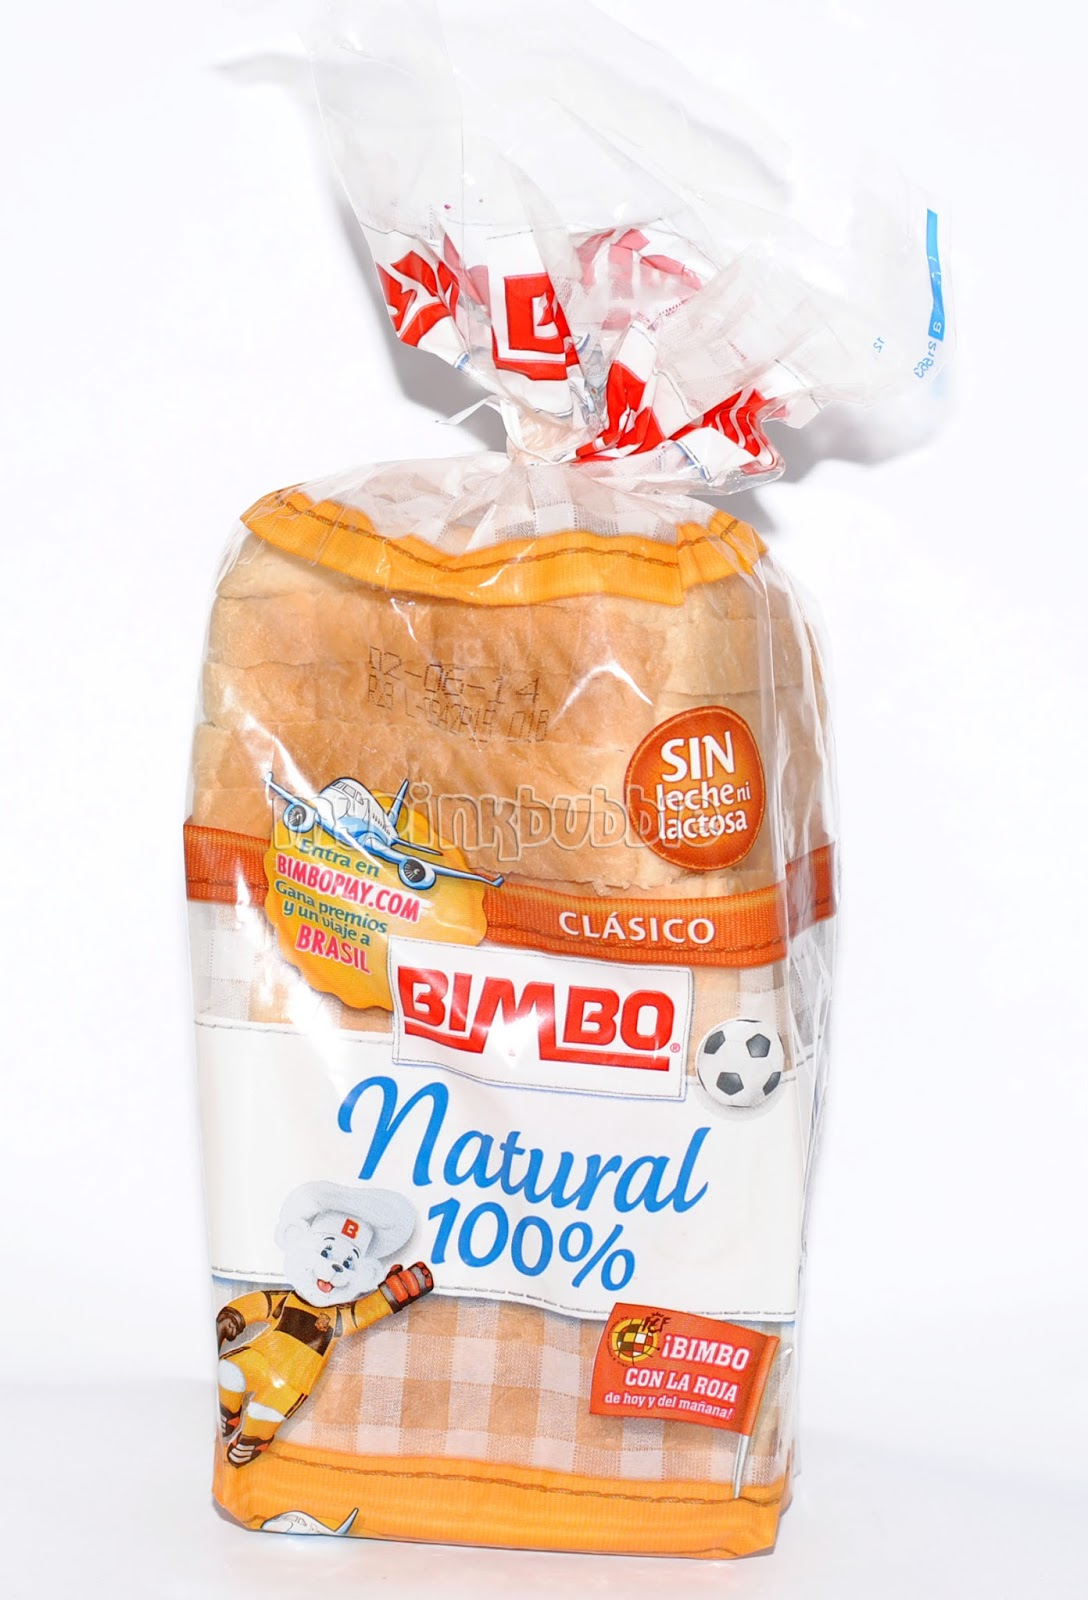 Pan Bimbo natural 100%